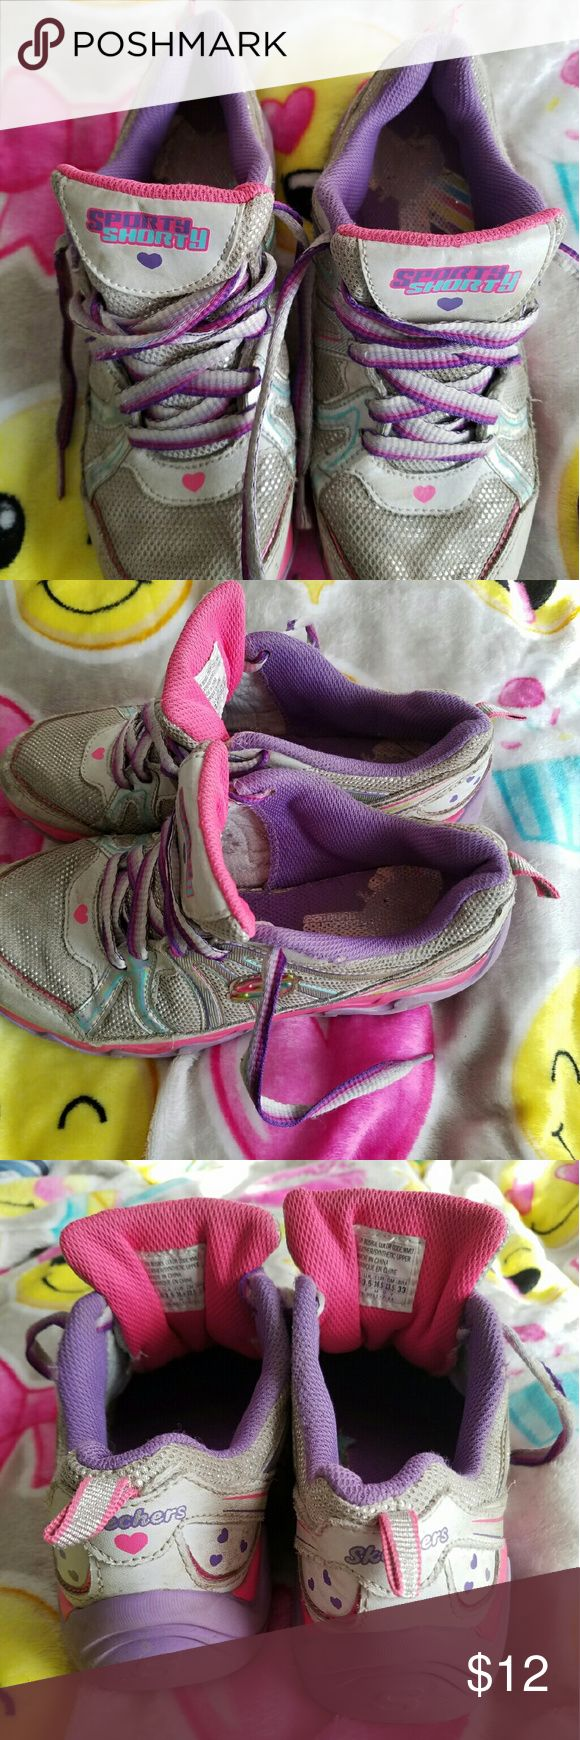 SKECHERS GIRL'S/WOMEN'S ATHLETIC SHOES SKECHERS GIRL'S/WOMEN'S ATHLETIC SHOES.  Non smoking home.  Multi-colored. Skechers Shoes Sneakers